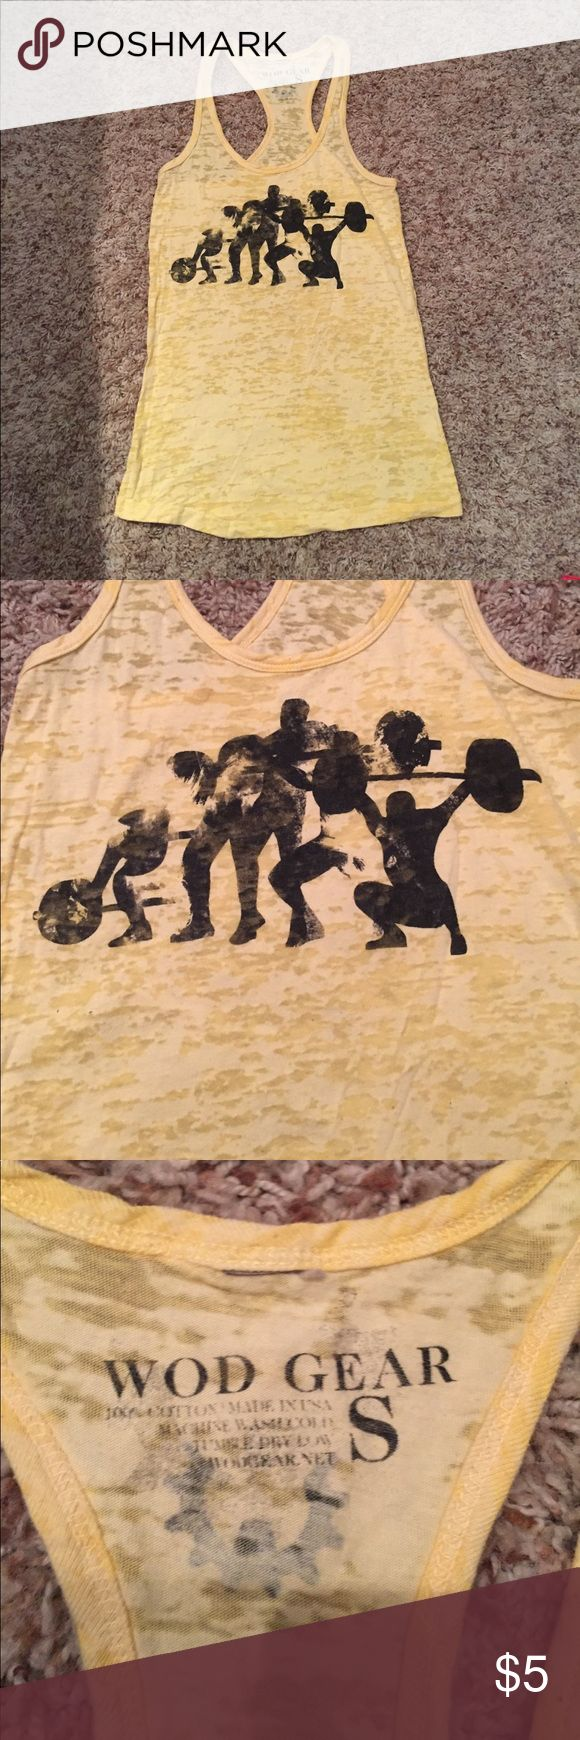 WOD Gear Snatch Tank- Size Small Super comfortable and breathable for Crossfit WODS. The design looks kinda faded in the picture but that is how it's supposed to look. Bundle with other workout gear I'm posting to save! wod gear Tops Tank Tops